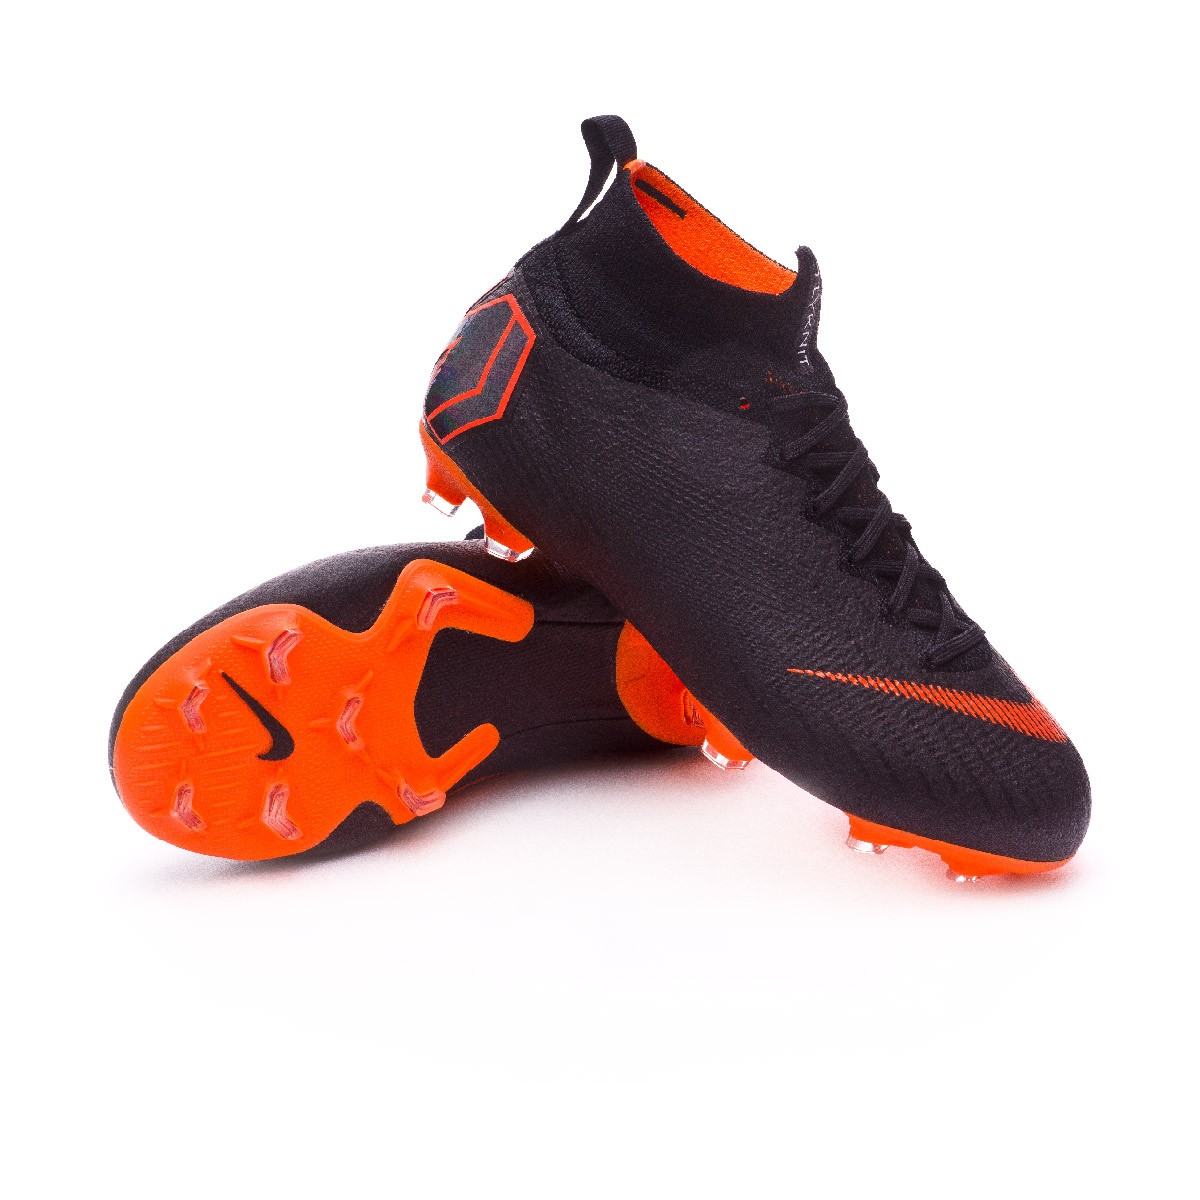 e115a3aad447 Football Boots Nike Kids Mercurial Superfly VI Elite FG Black-Total ...